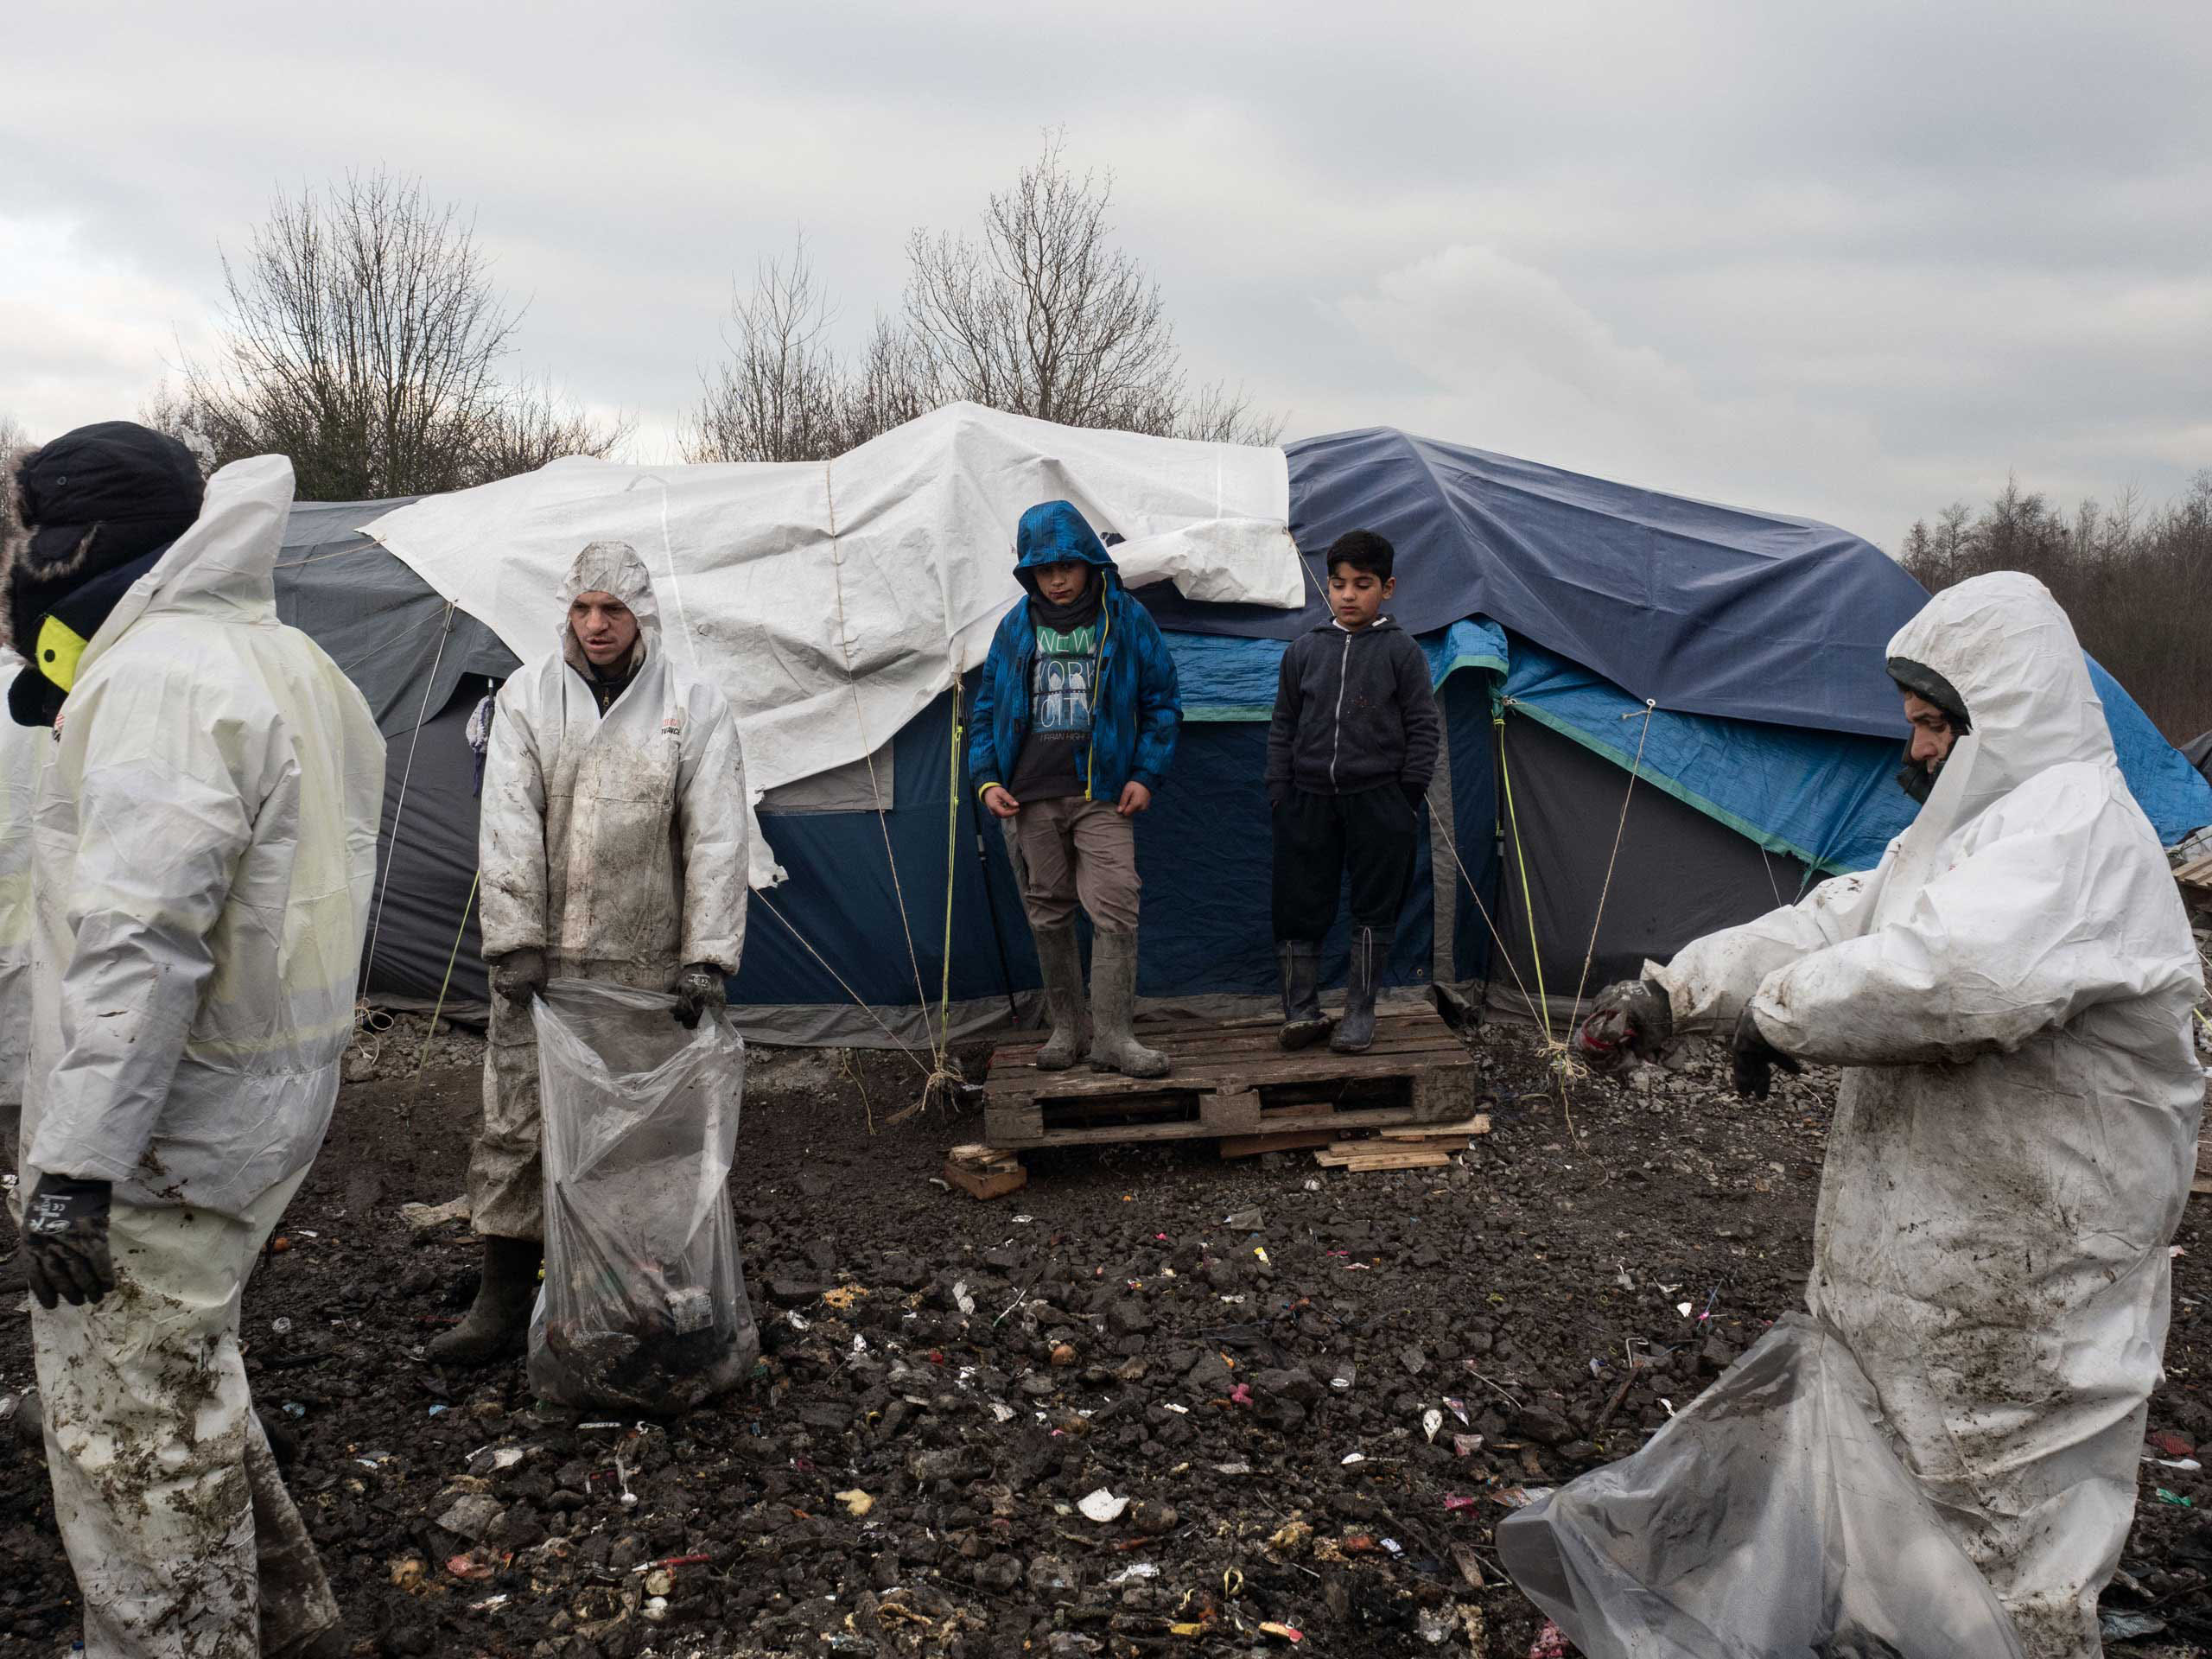 A group of workers from a private company have been hired to clean the trash left by the migrants in Grande-Synthe, the refugee camp near Dunkirk, which is accommodating over 2,500 refugees mostly families from Kurdistan, Jan. 20, 2016.